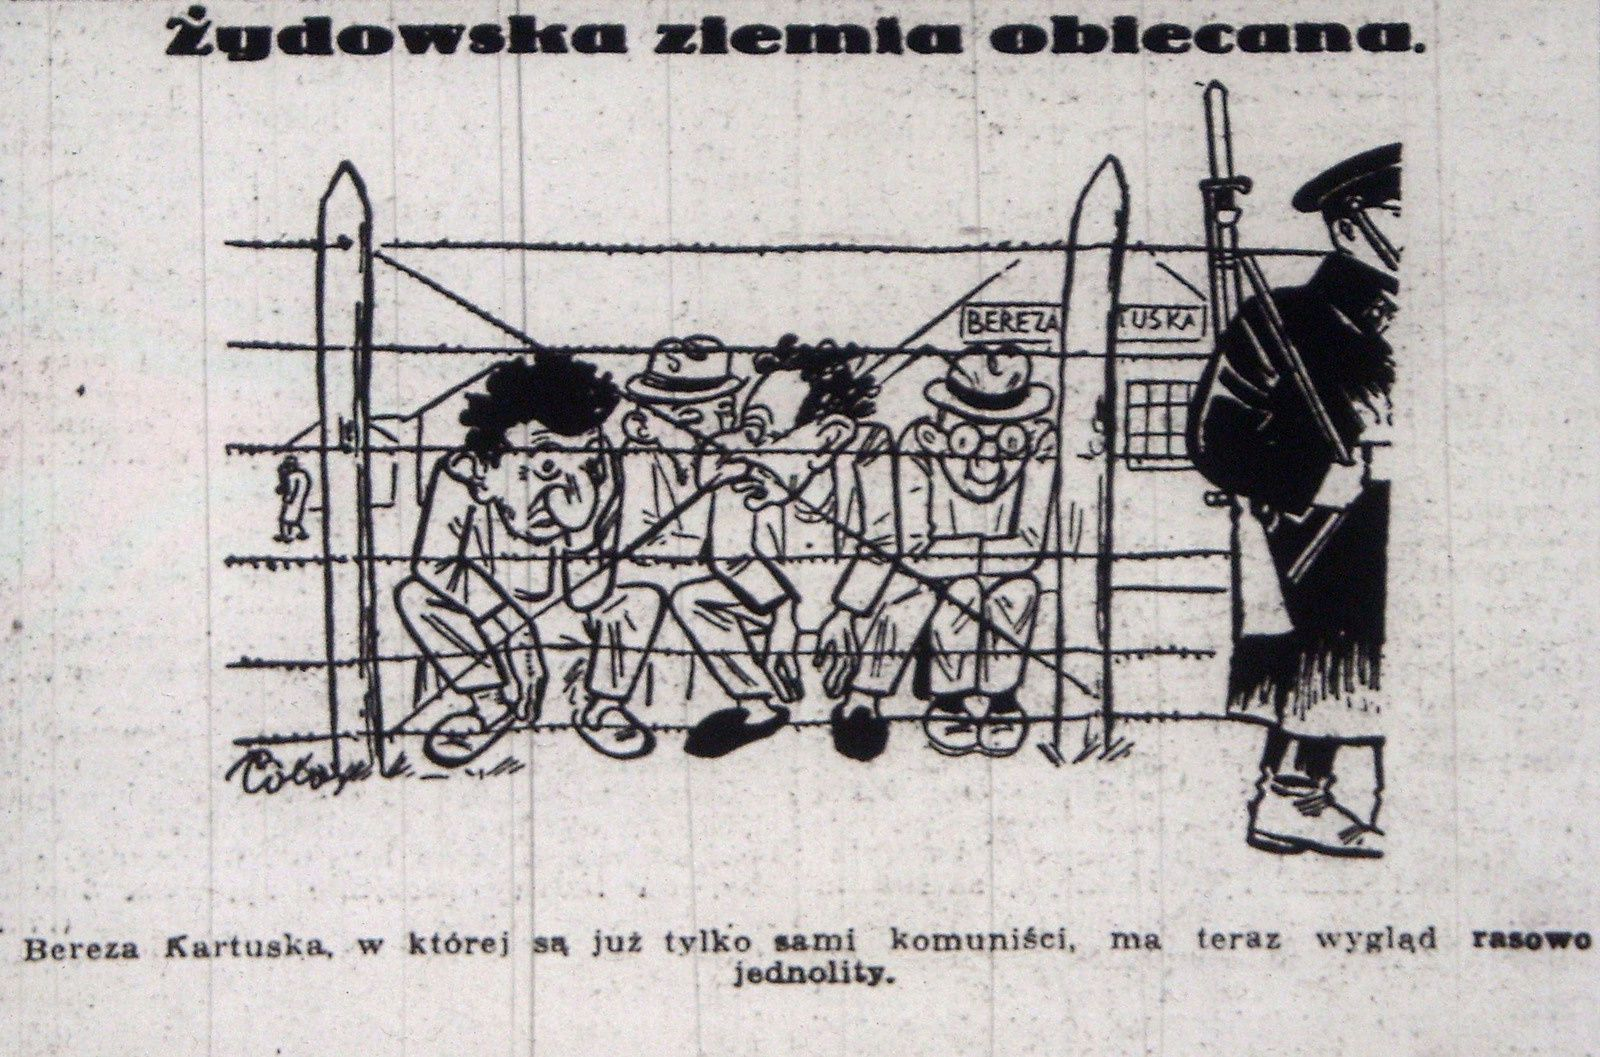 Polo [Paweł Griniow], Jewish promised land (1936). This cartoon shows the Jews-communists imprisoned in an isolation camp for the opponents of the Polish state in Bereza Kartuska